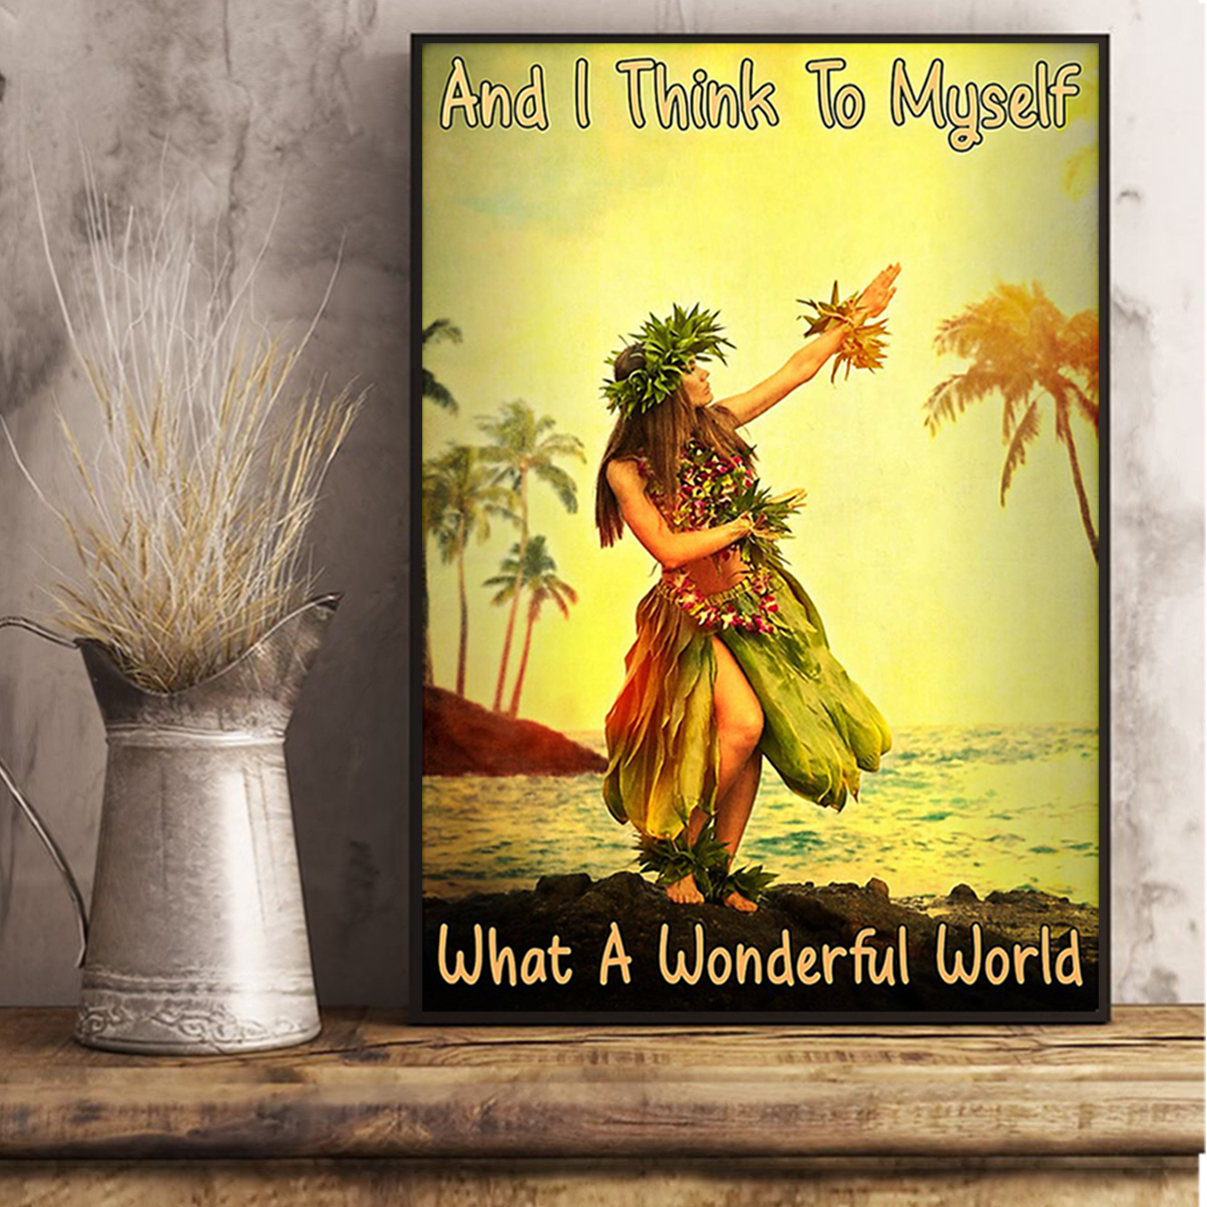 Hawaii girl and I think to myself what a wonderful world poster A3